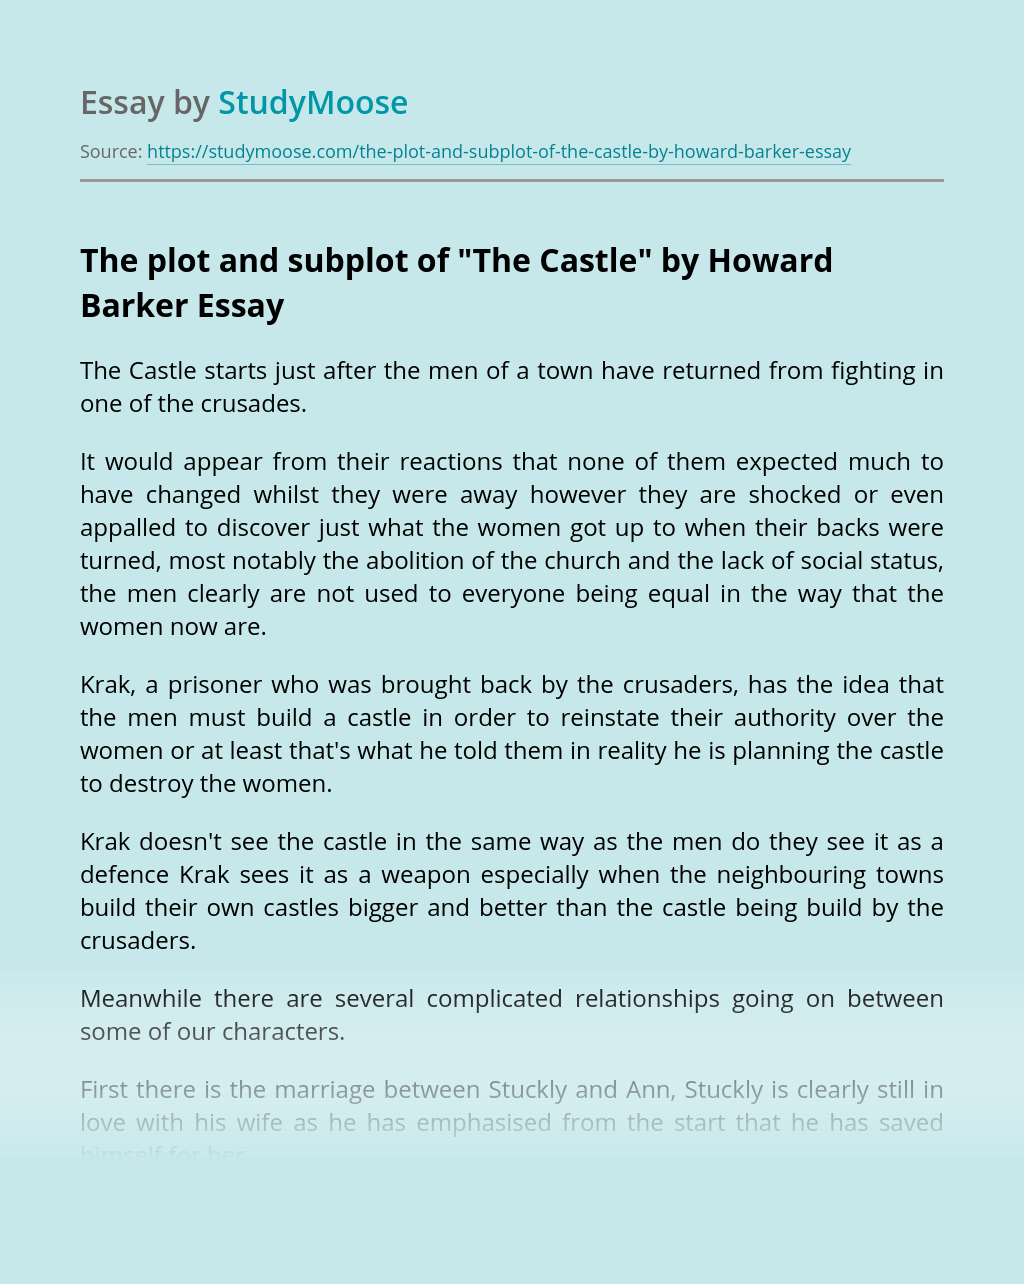 """The plot and subplot of """"The Castle"""" by Howard Barker"""